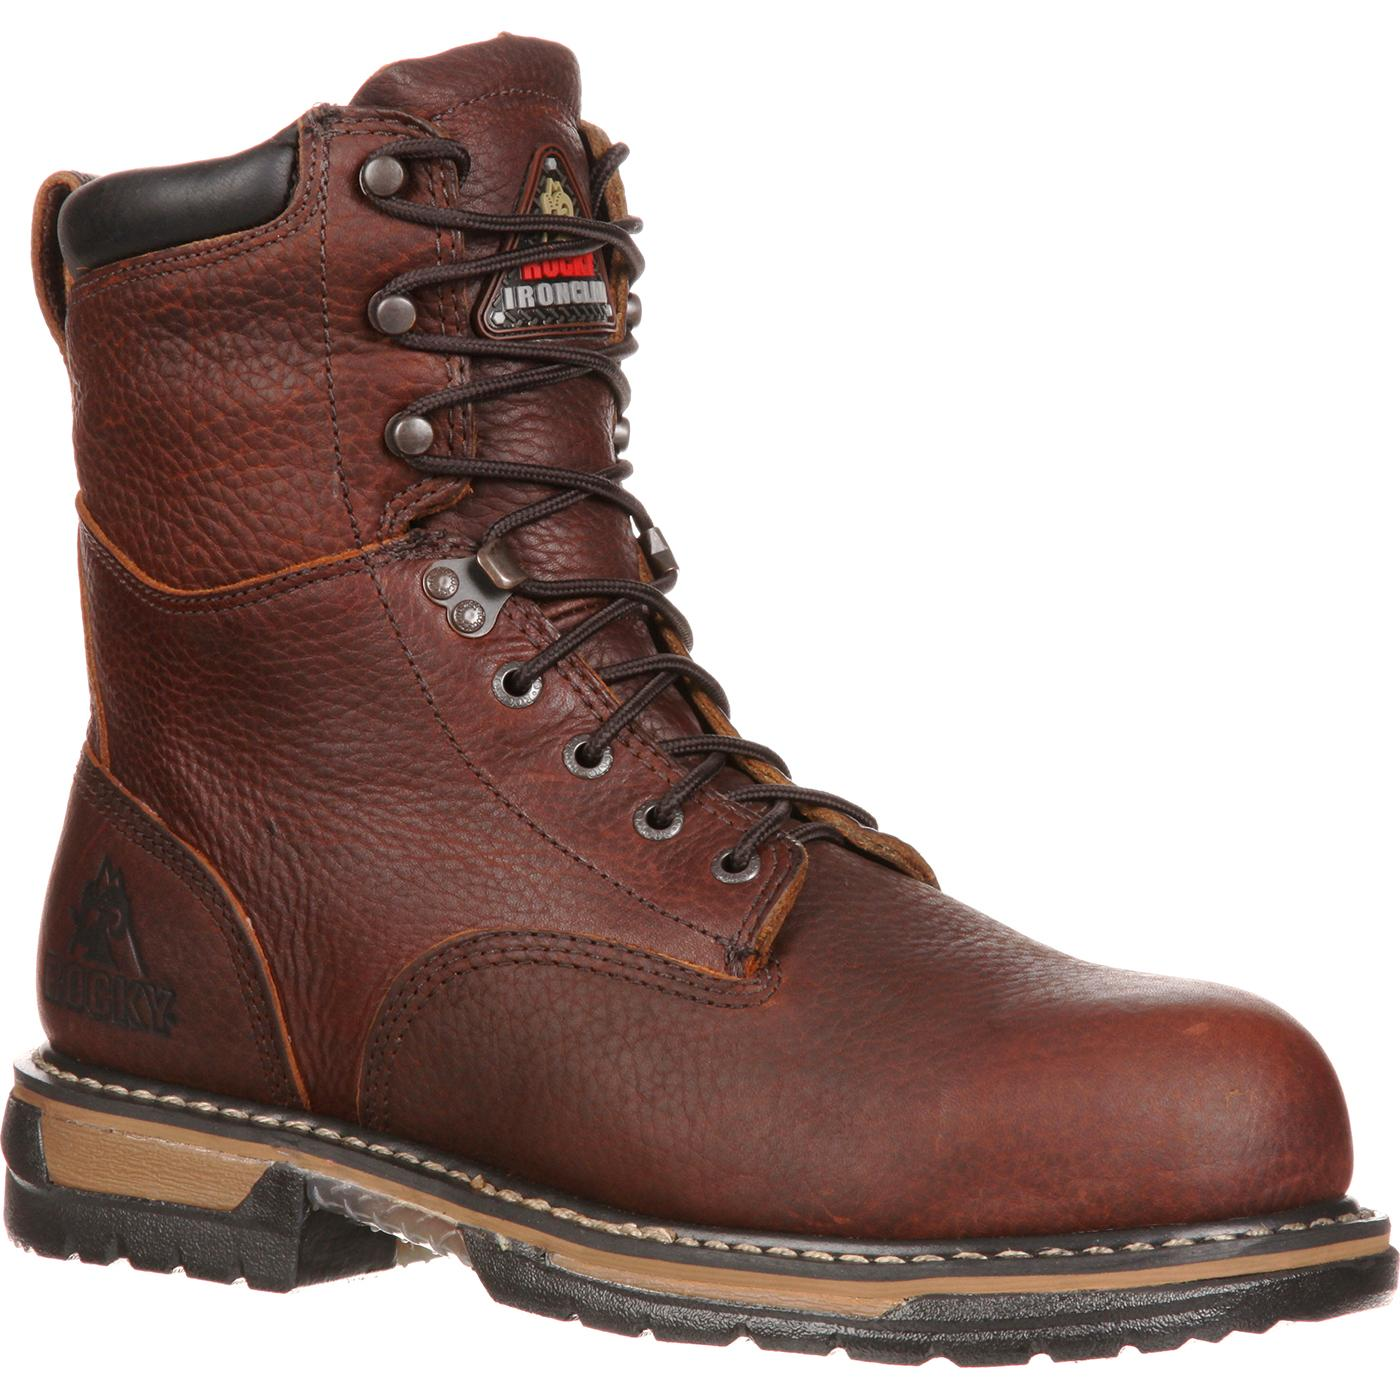 Rocky Men's Work Boot - All Men's Work Boots